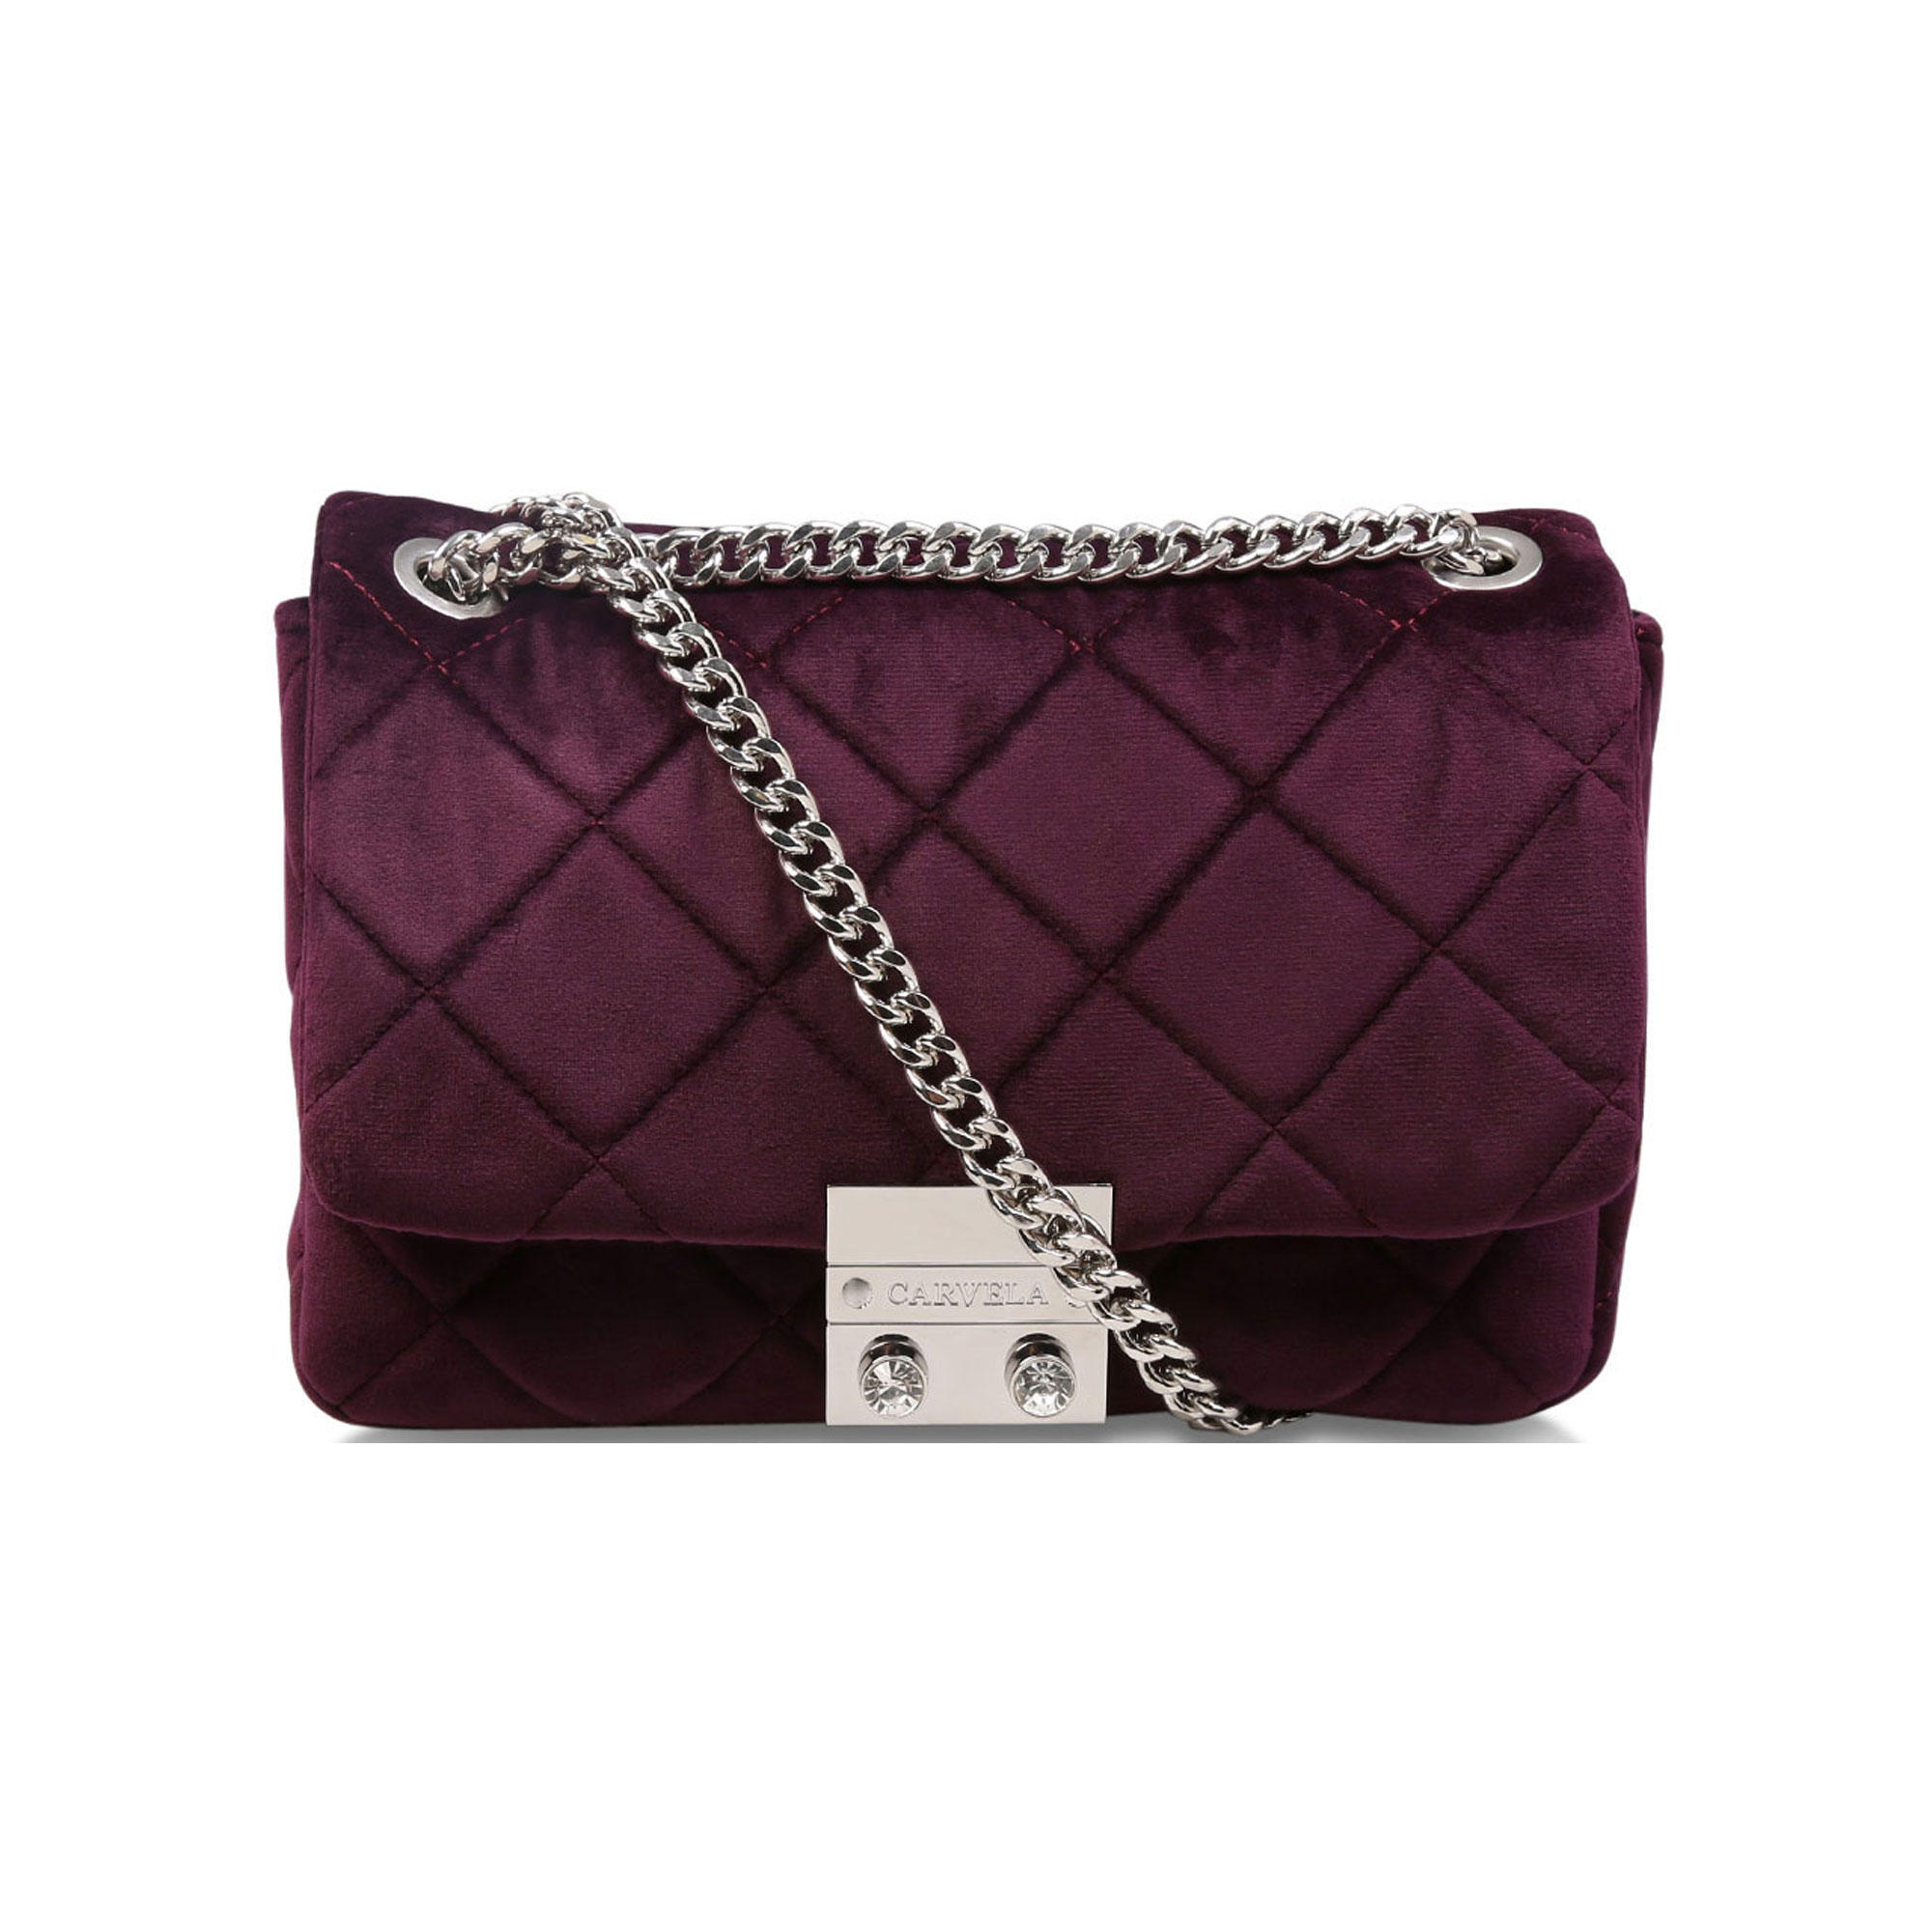 600017599907894150PURPLE: Binky Jewel Lock Shoulder Bag